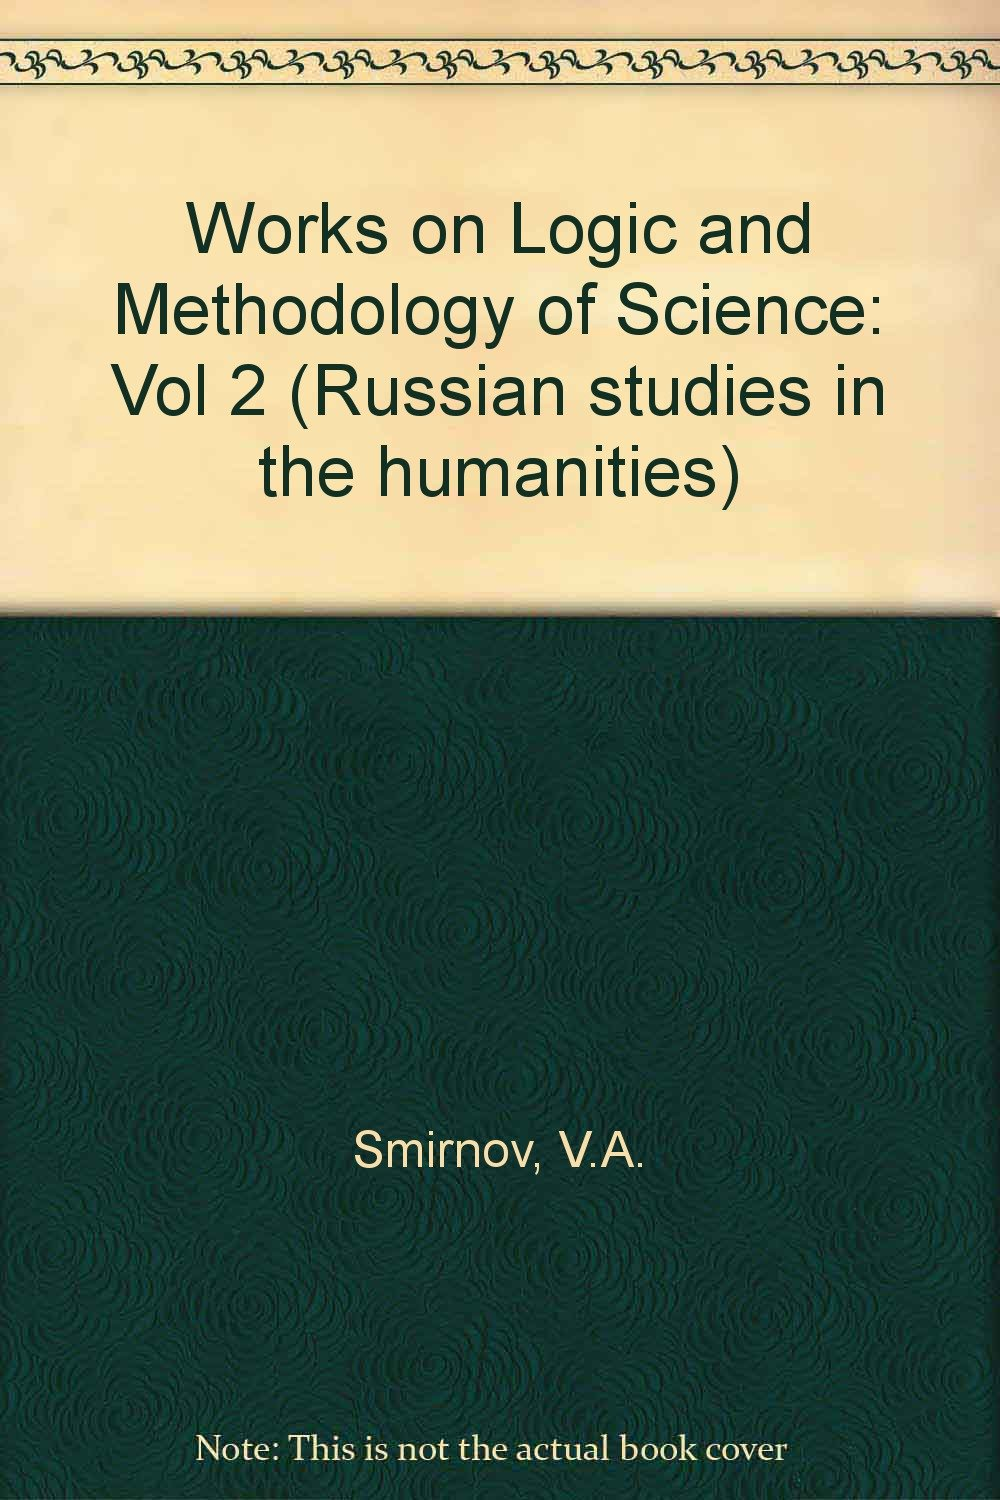 Download Works on Logic and Methodology of Science: Vol 2 (Russian studies in the humanities) pdf epub